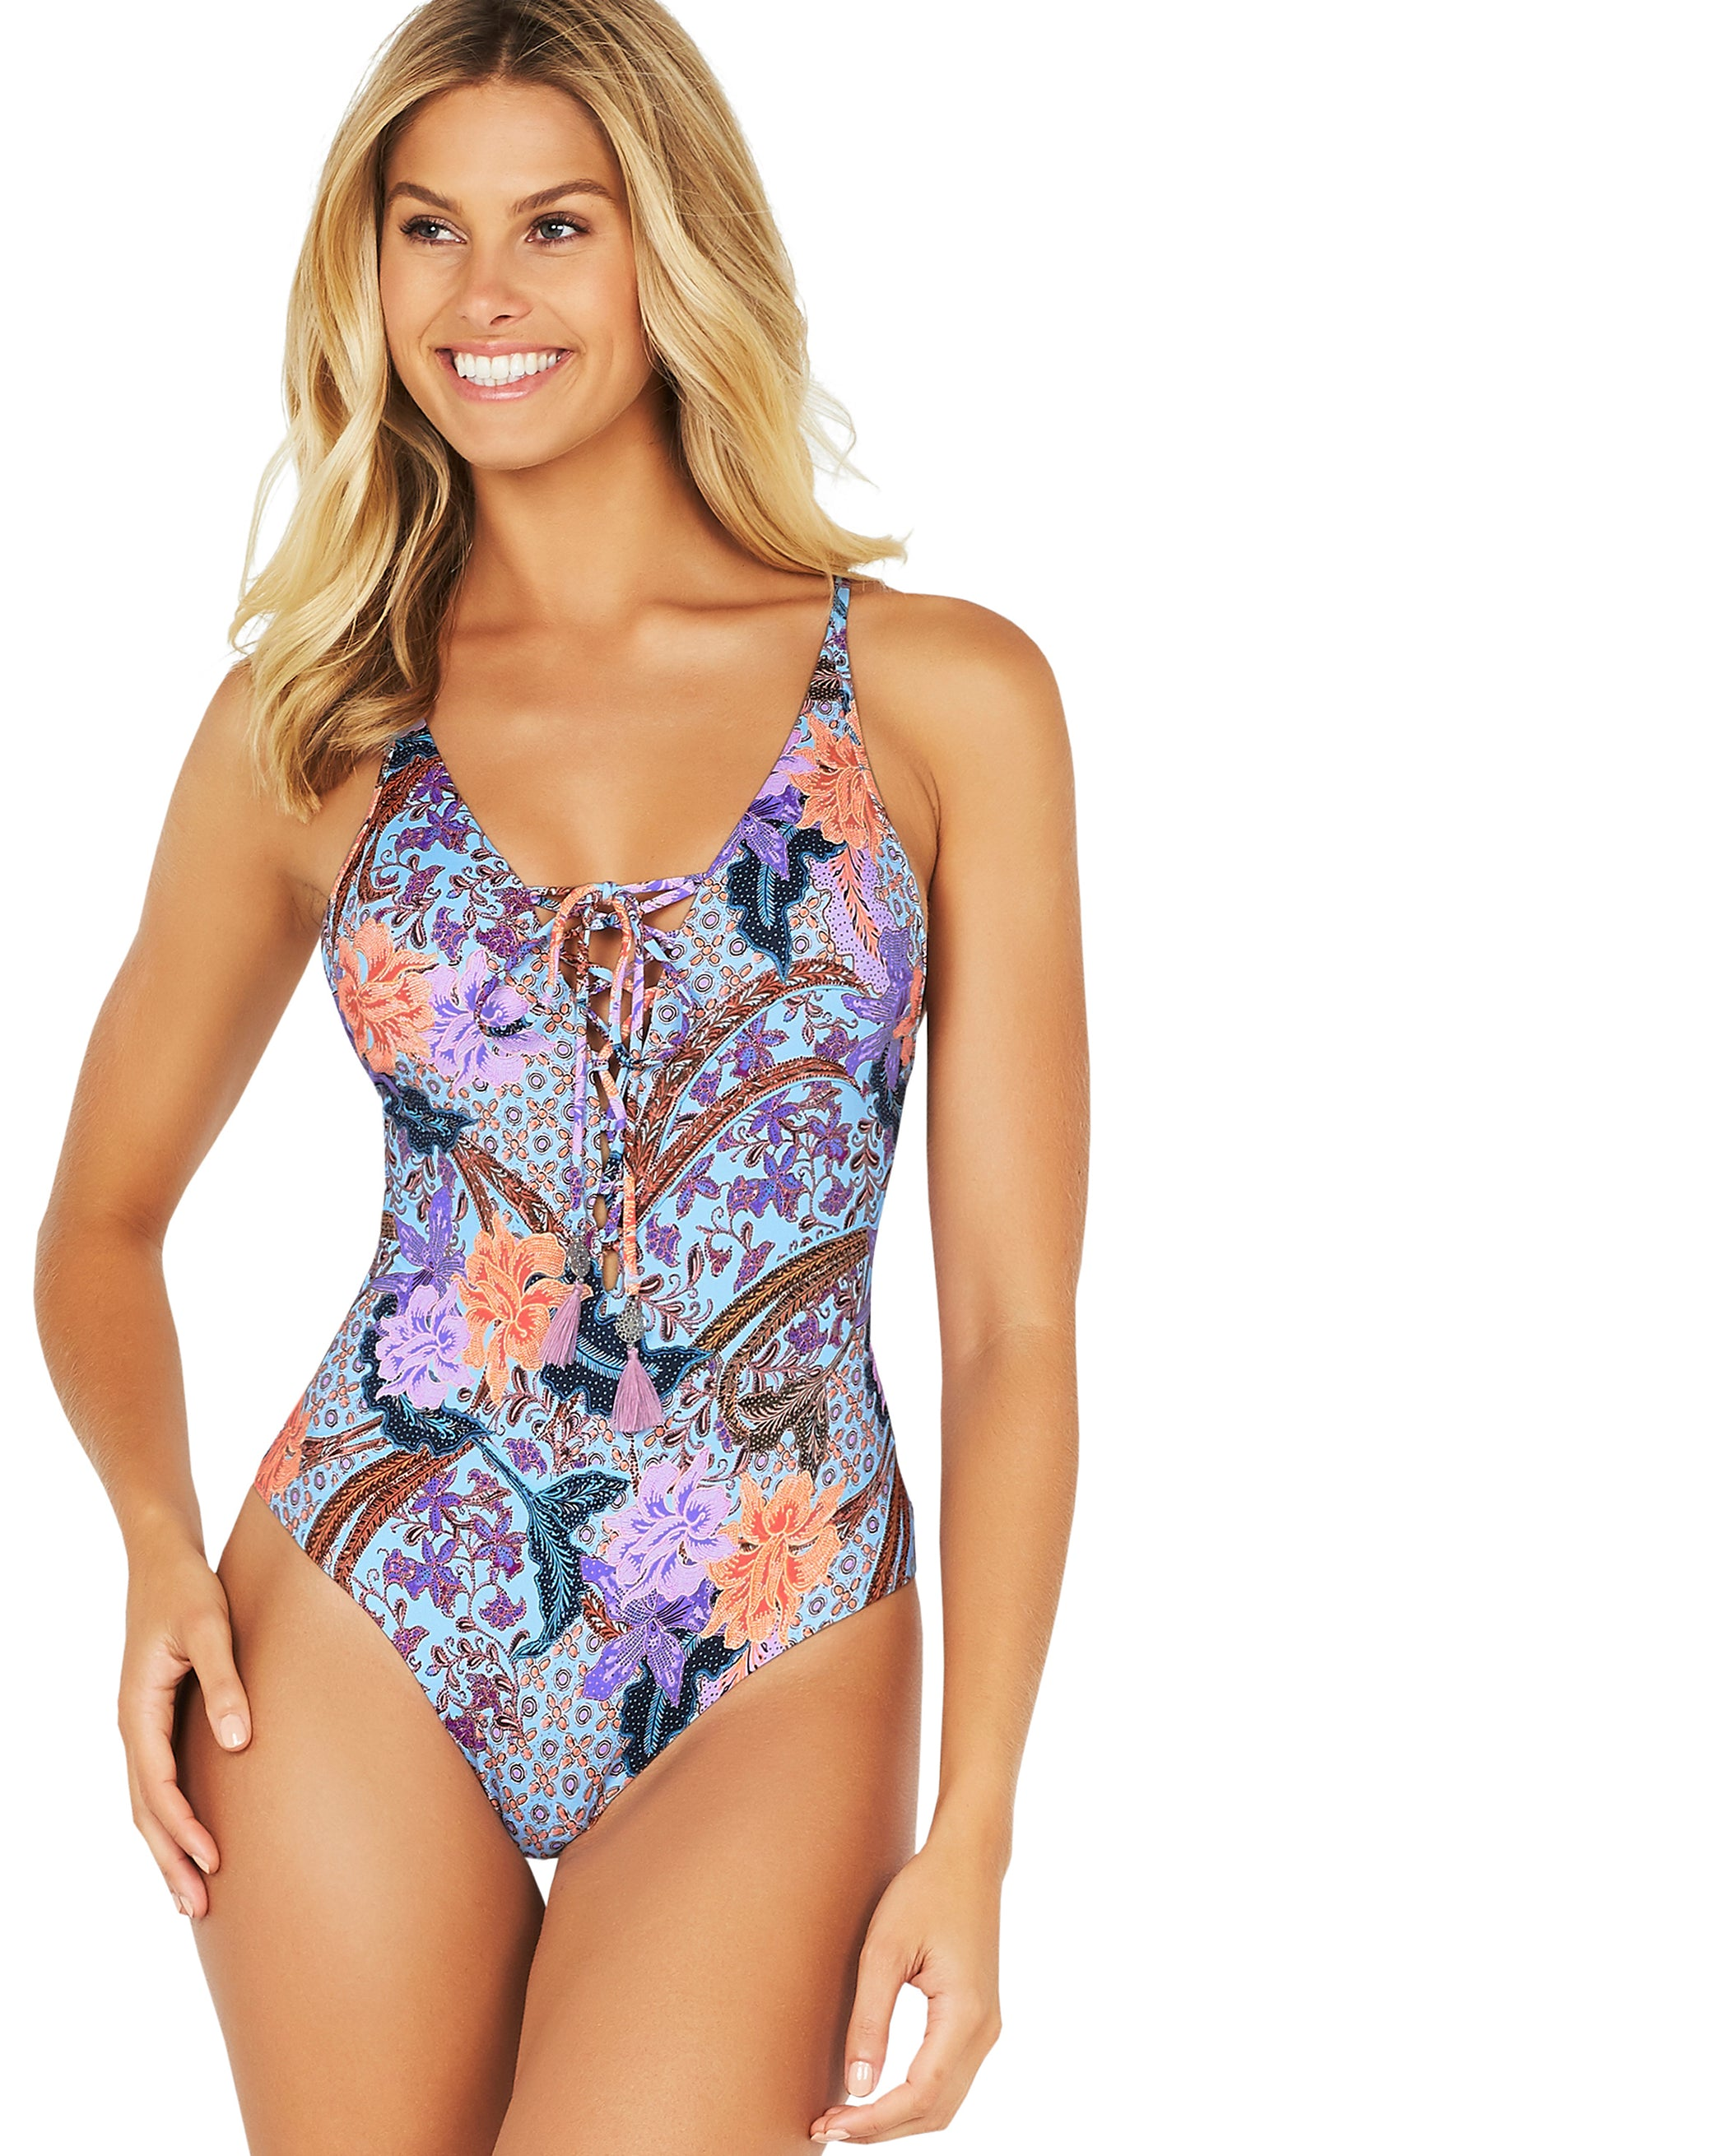 BATIKA BEACH PLUNGE LACE UP ONE PIECE SWIMSUIT